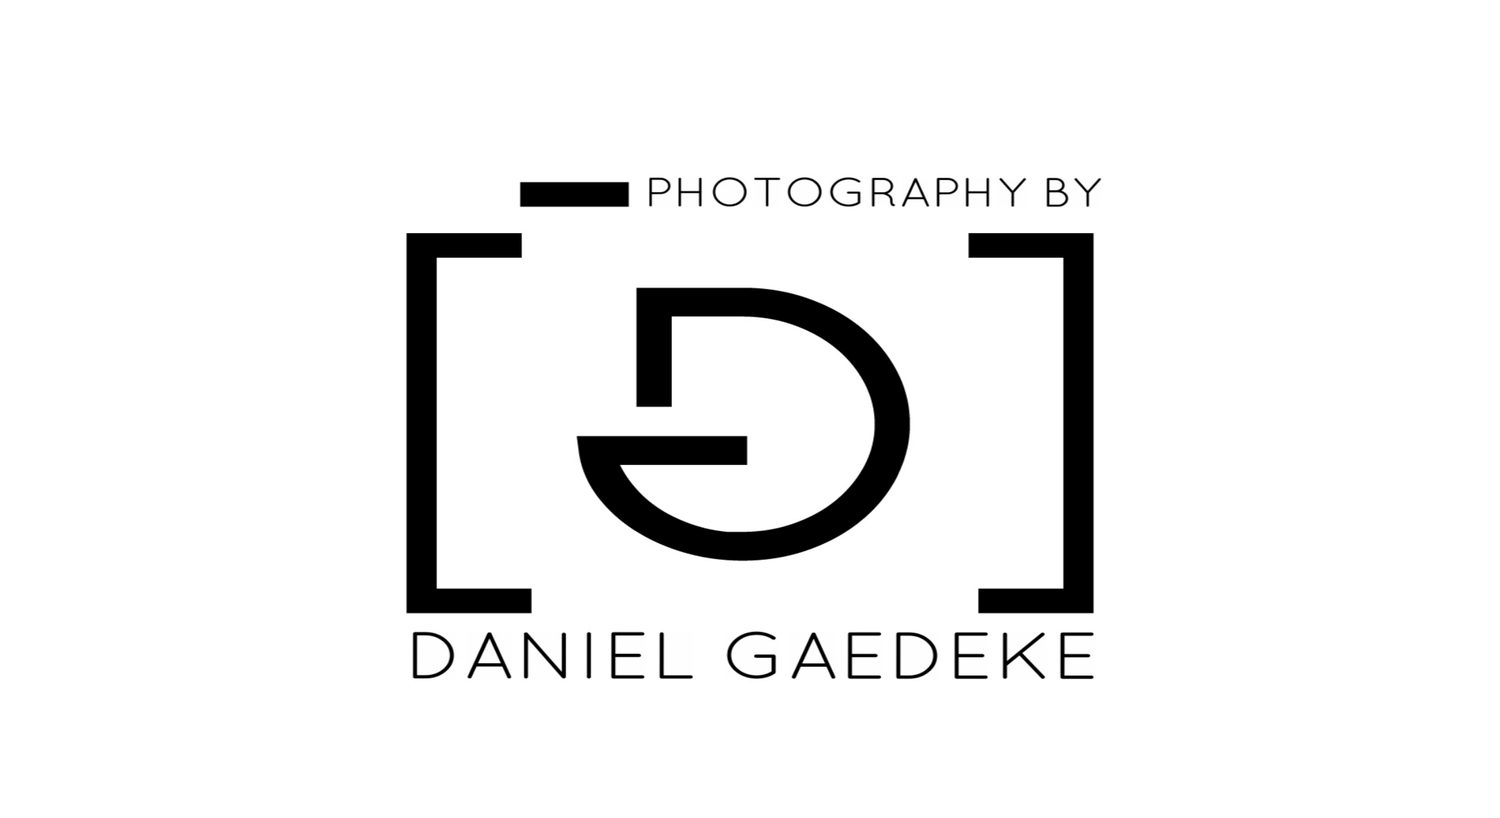 Photography by Daniel Gaedeke